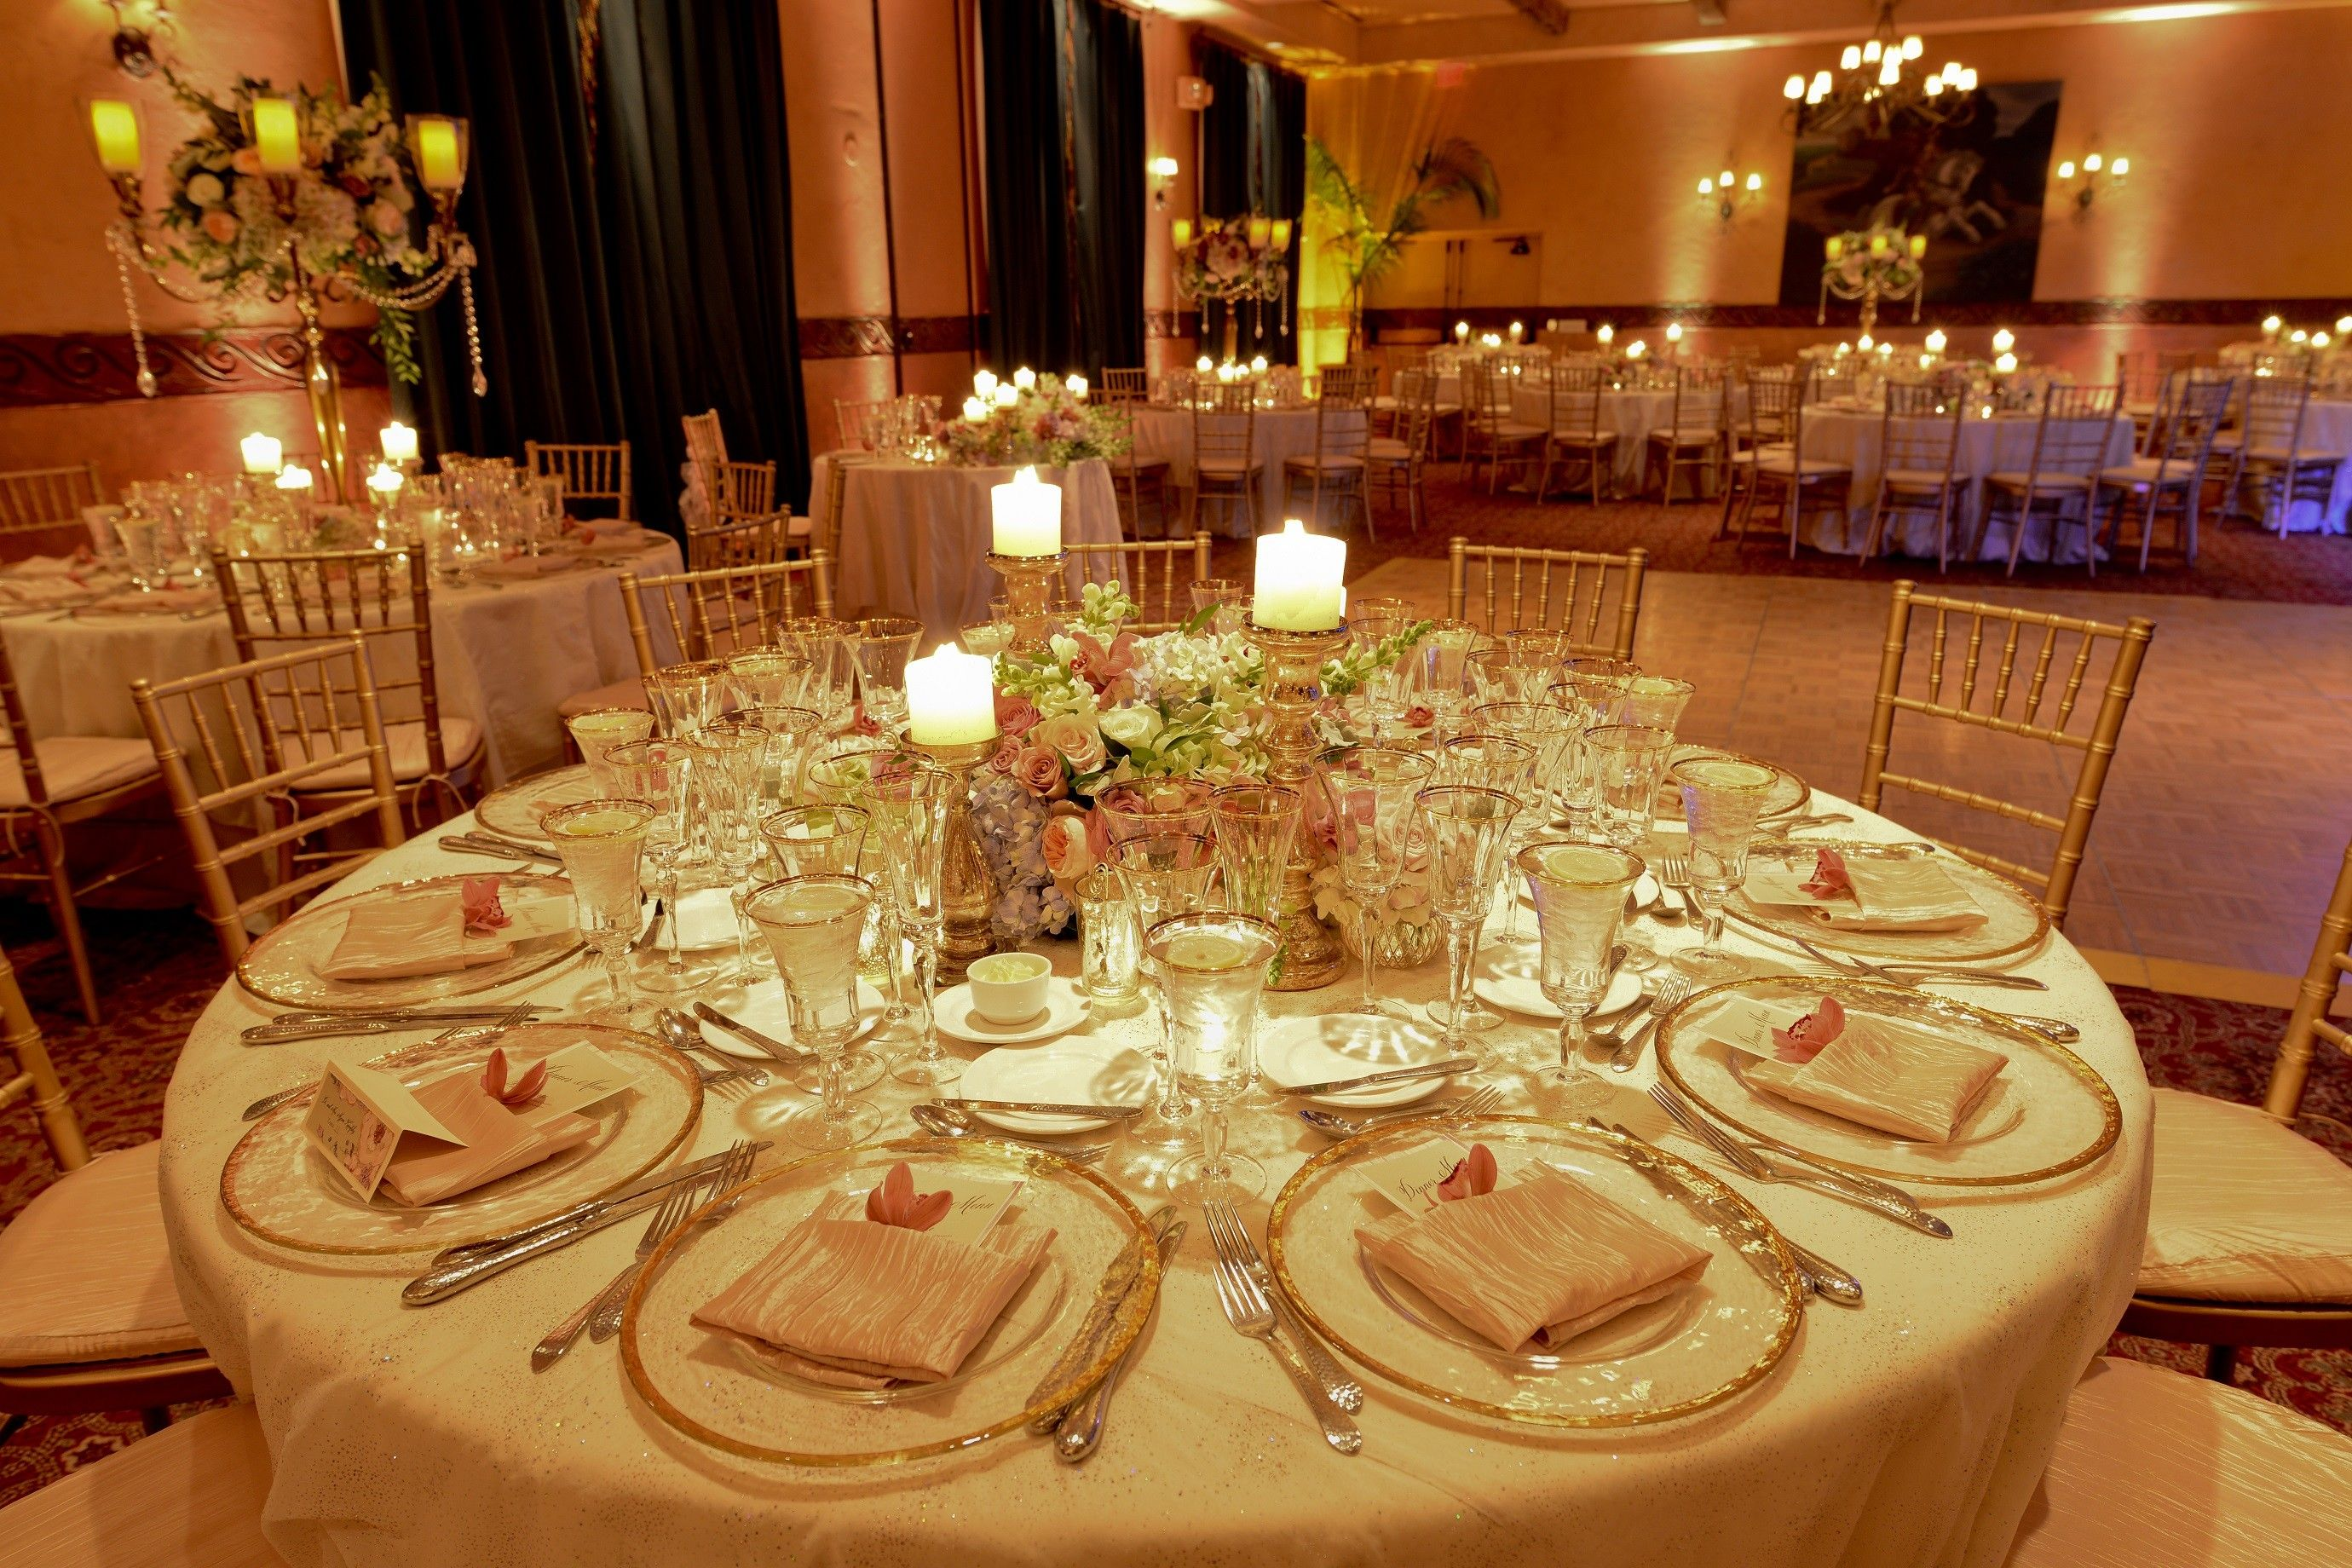 Unique wedding centerpiece ideas with candles for romantic for Wedding banquet decorations